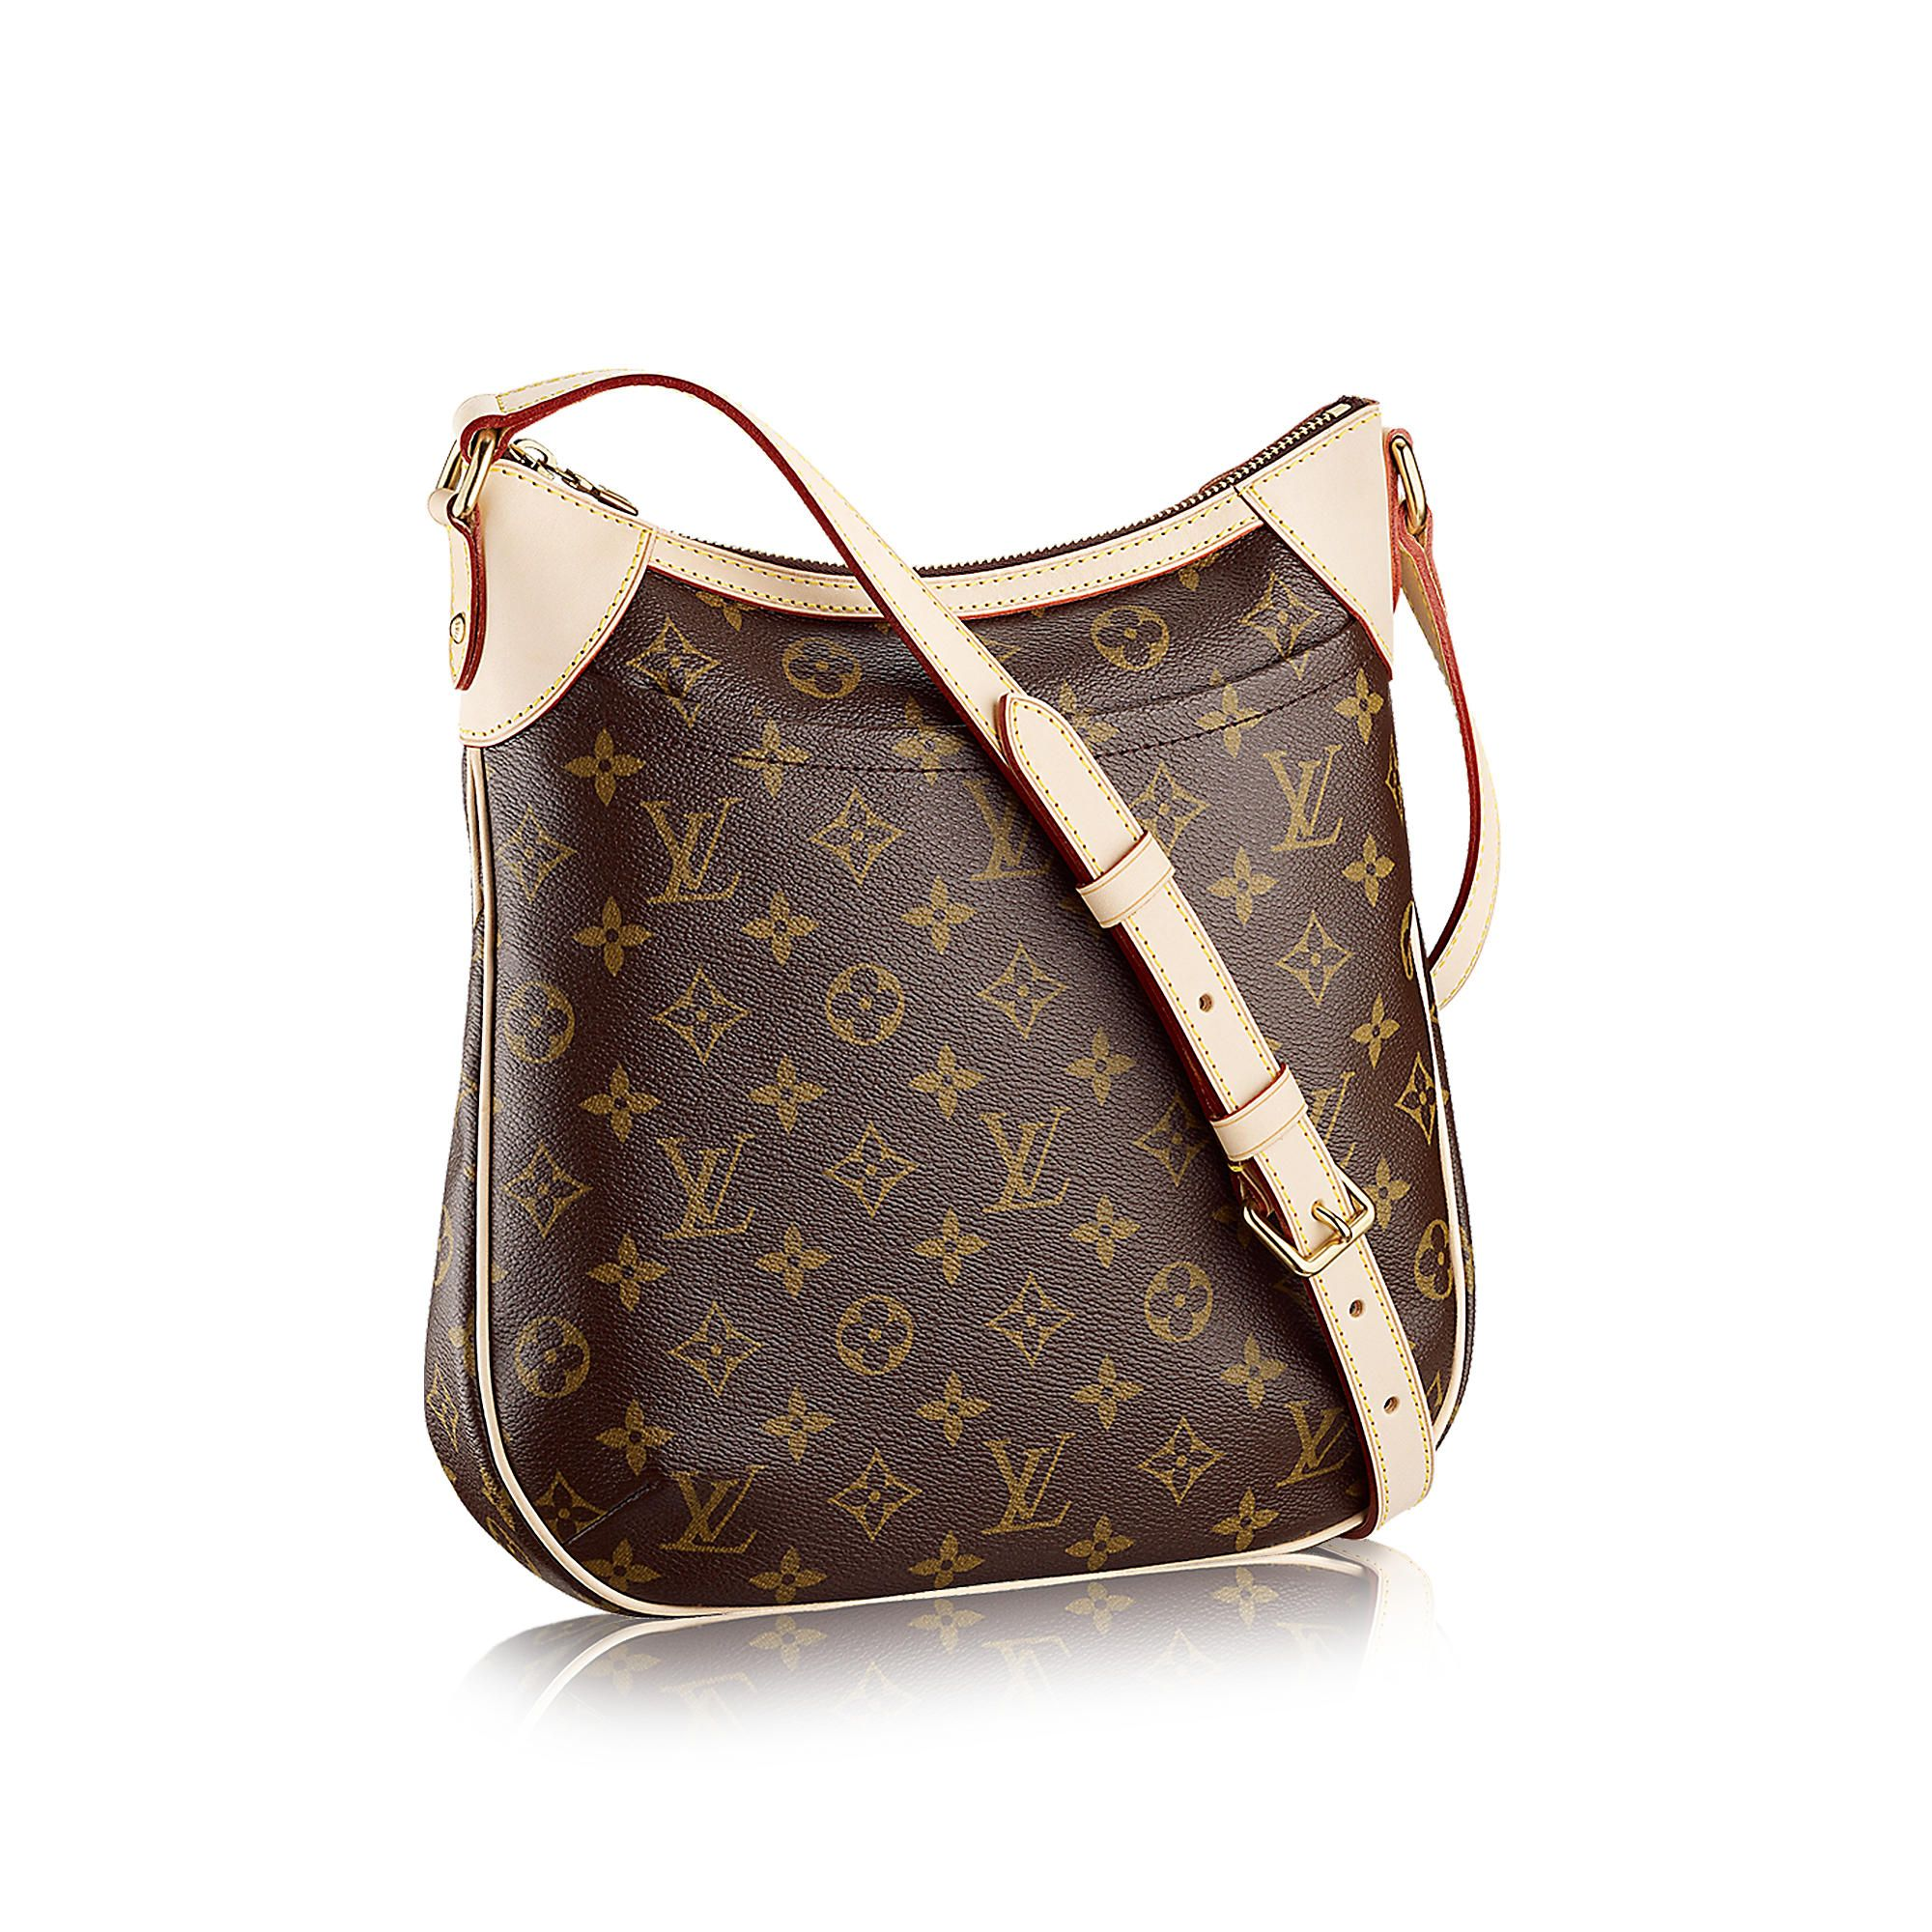 2754d846551ca Buy Authentic Louis Vuitton Handbags   Handbags - Louis Vuitton Women Louis  Vuitton Men Louis Vuitton Styles Buy Authentic Louis Vuitton Handbags from  ...